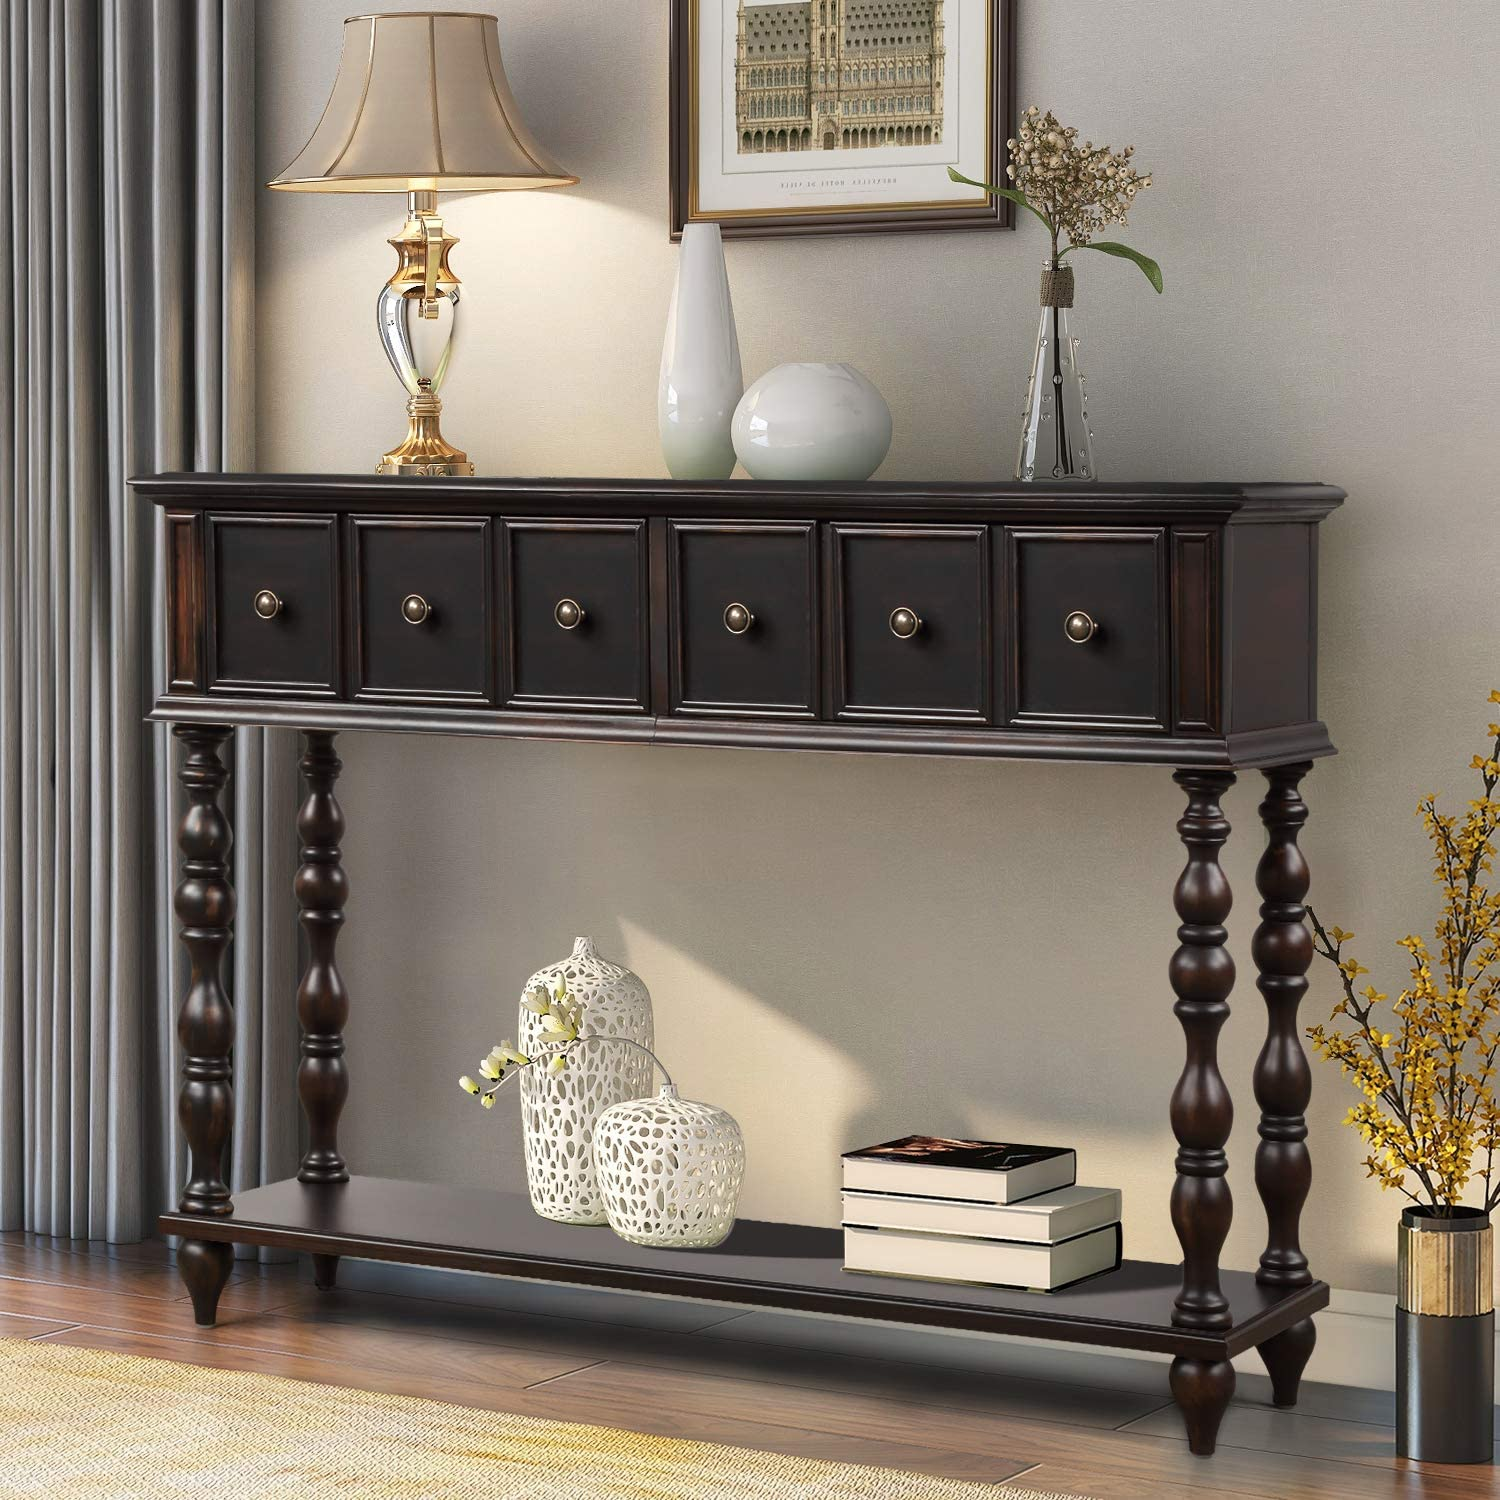 Console Table Rustic Entryway Table Antique-Inspired Design Sofa Table Hallway Table with Two Exquisite Drawers and Bottom Shelf for Living Room (Espresso Brown)